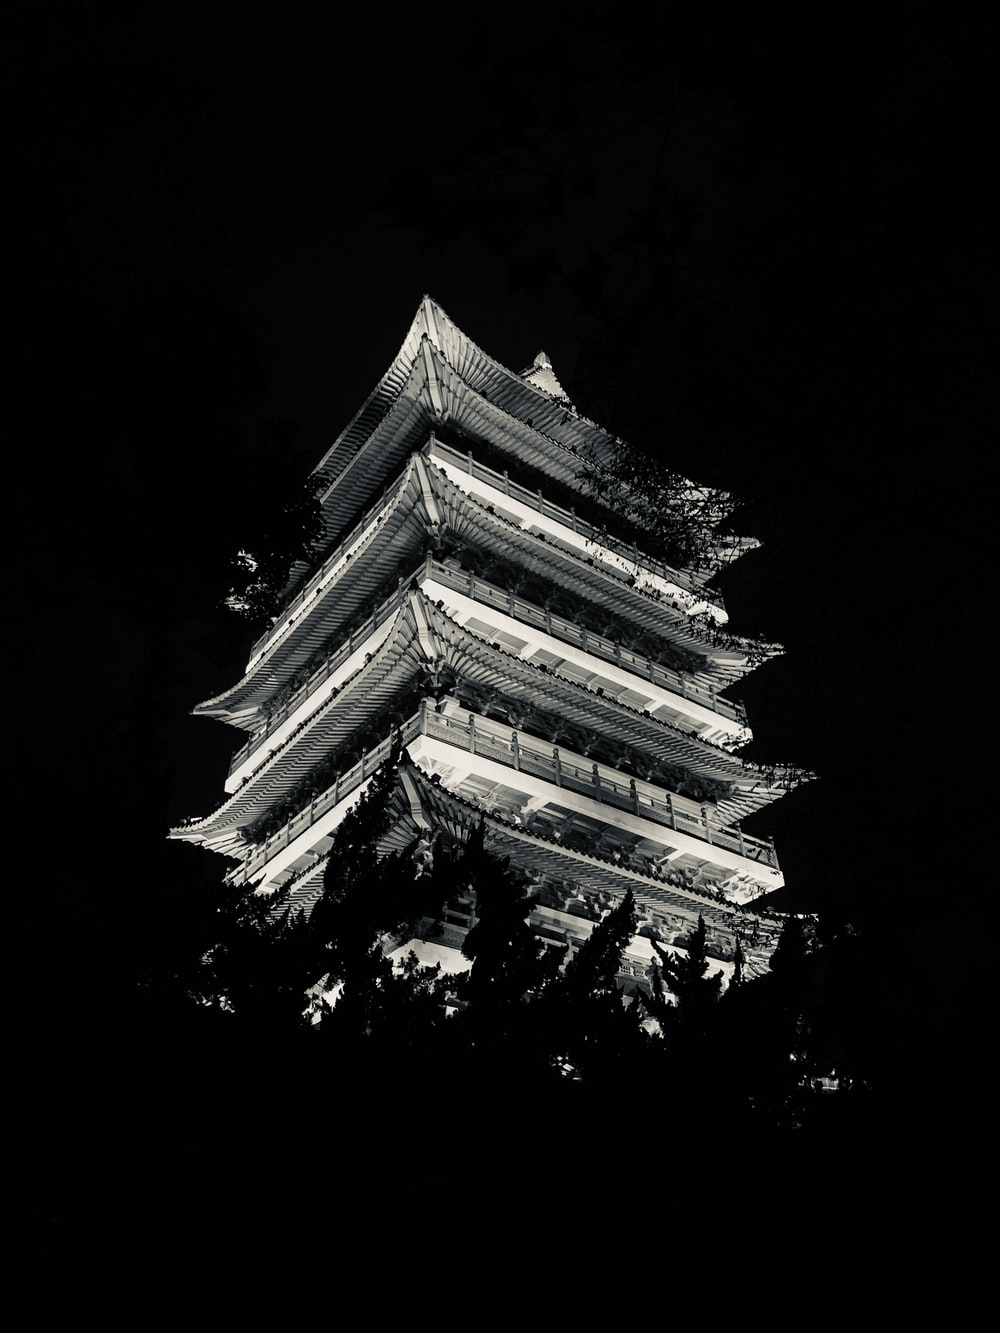 white and gold temple during night time